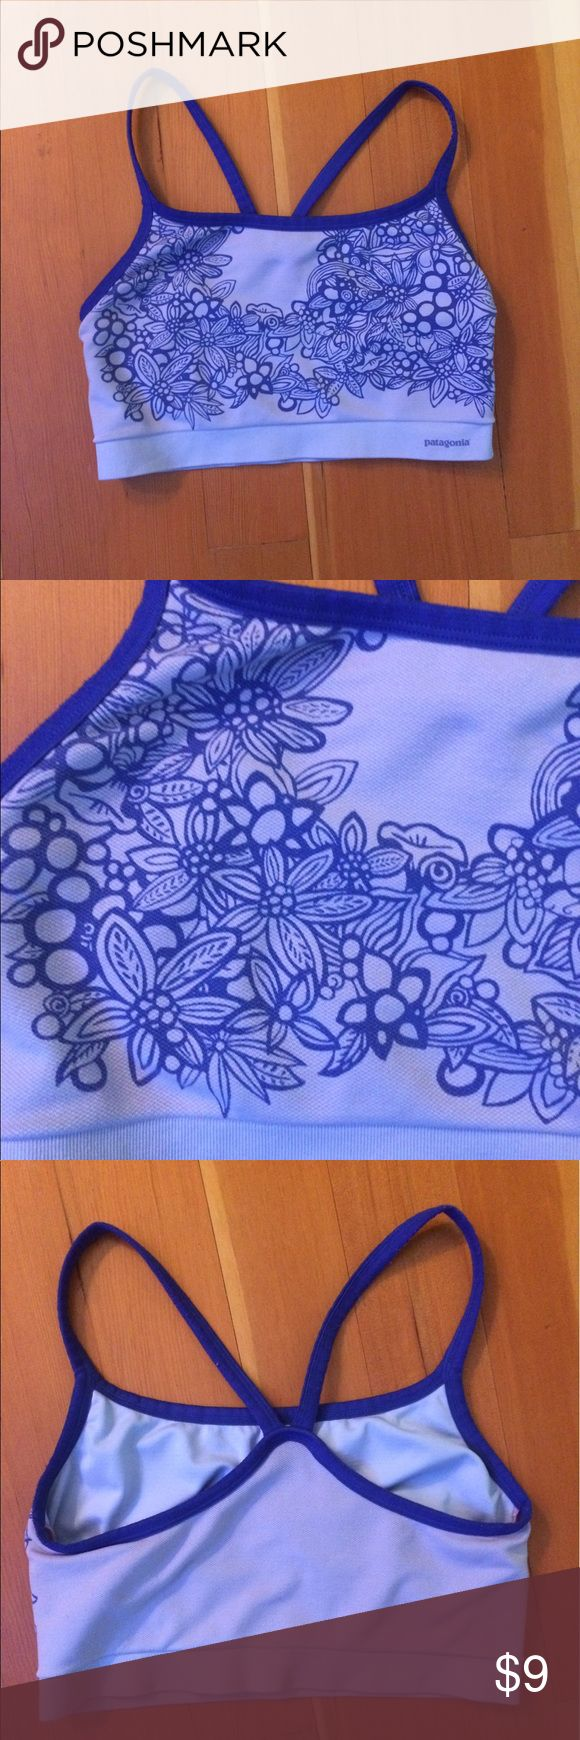 Women's Patagonia Blue Floral Sports Bra A gently used Patagonia L sports bra with a cute floral pattern. Is in great condition with no stains or tears and is very comfy and cute! Patagonia Intimates & Sleepwear Bras